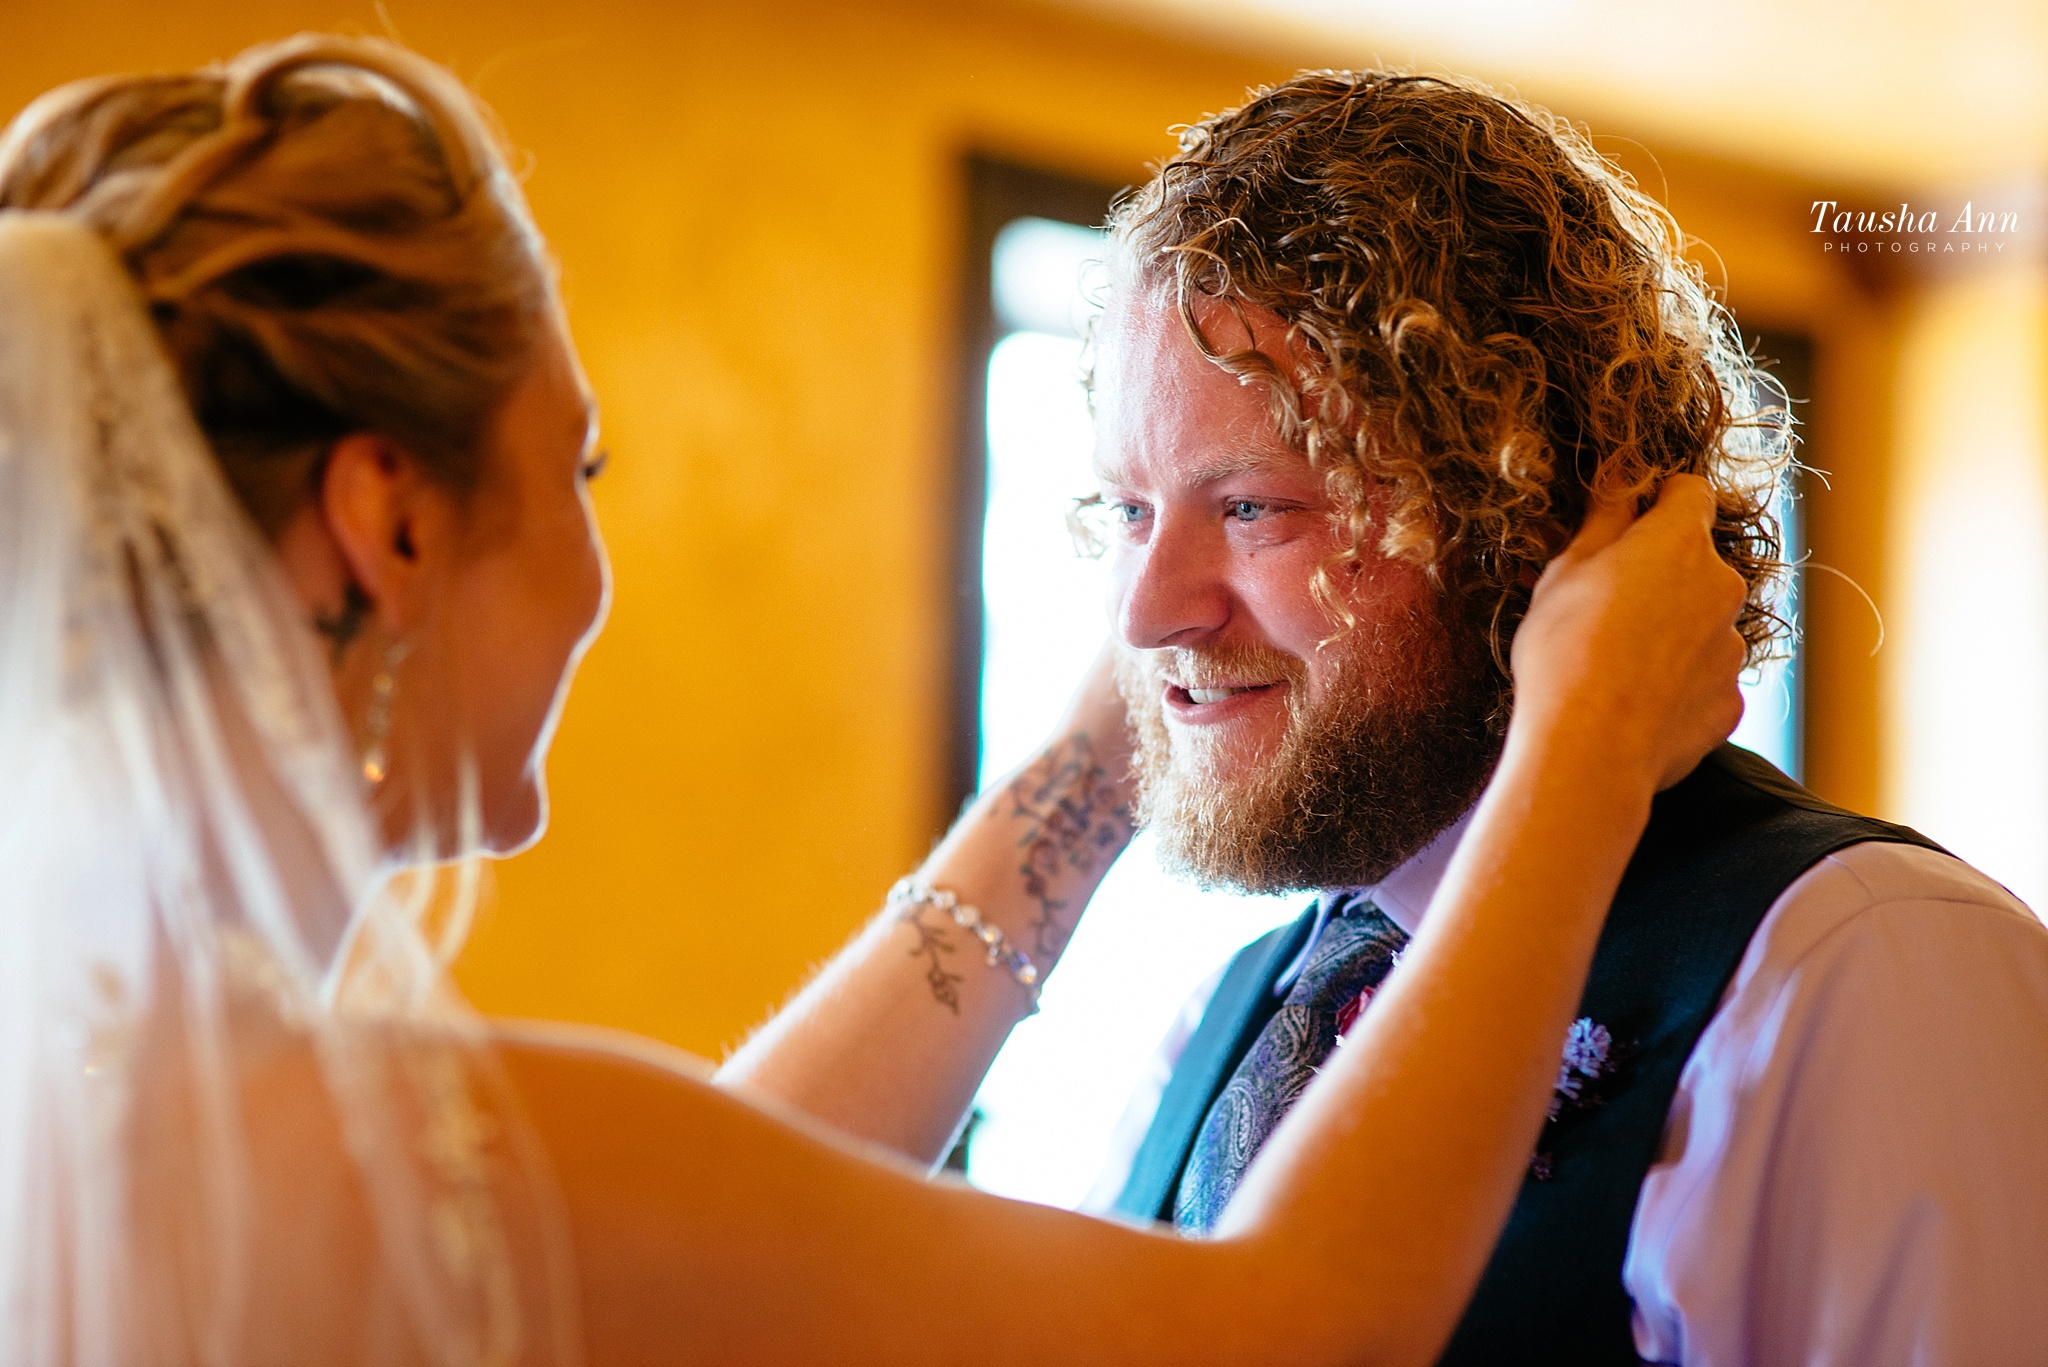 Groom seeing bride for first time. Tear running down his face.